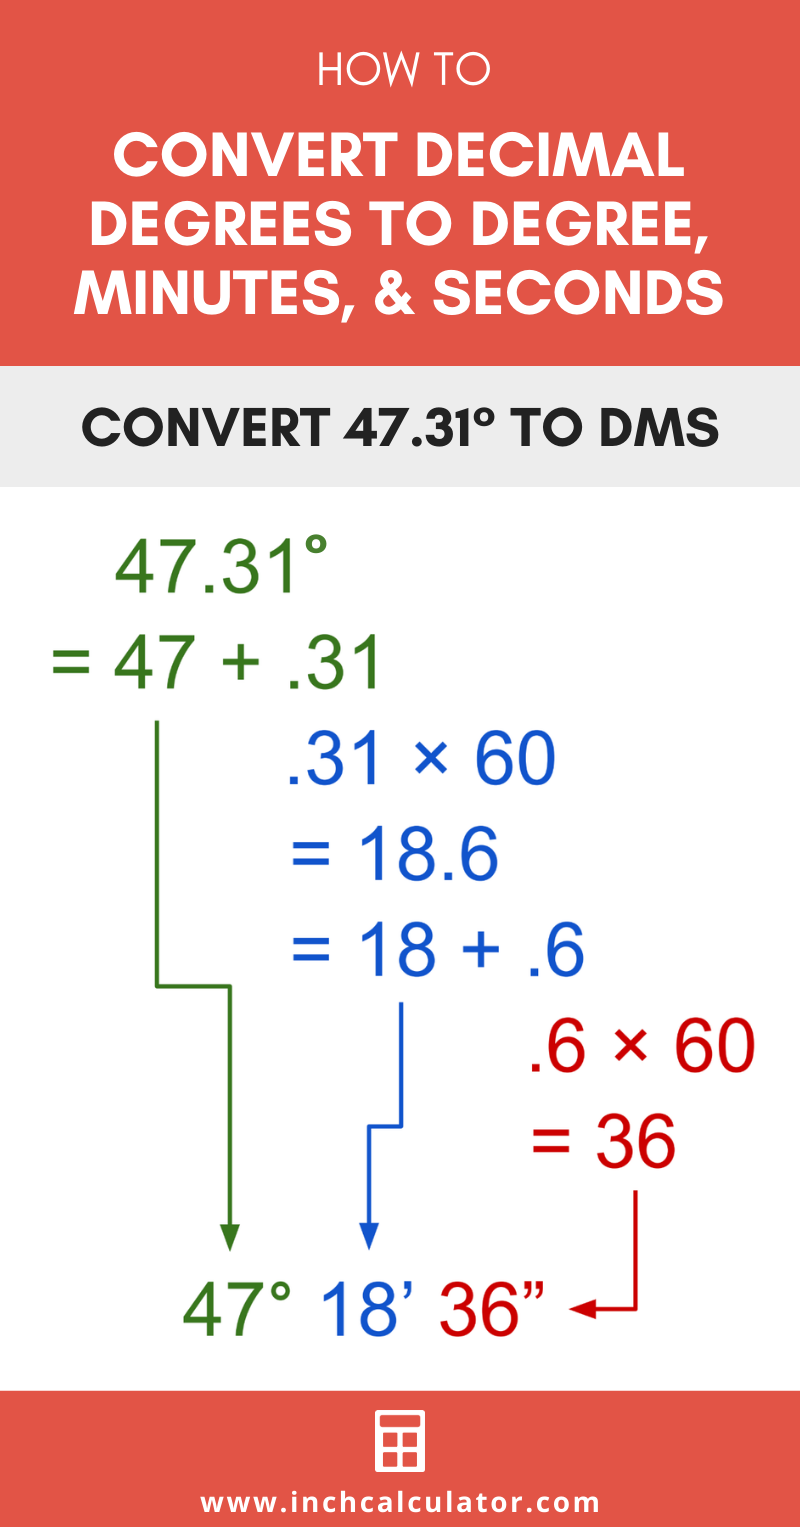 Decimal Degrees To Degrees Minutes Seconds Calculator Inch Calculator Math Methods Studying Math Teaching Math